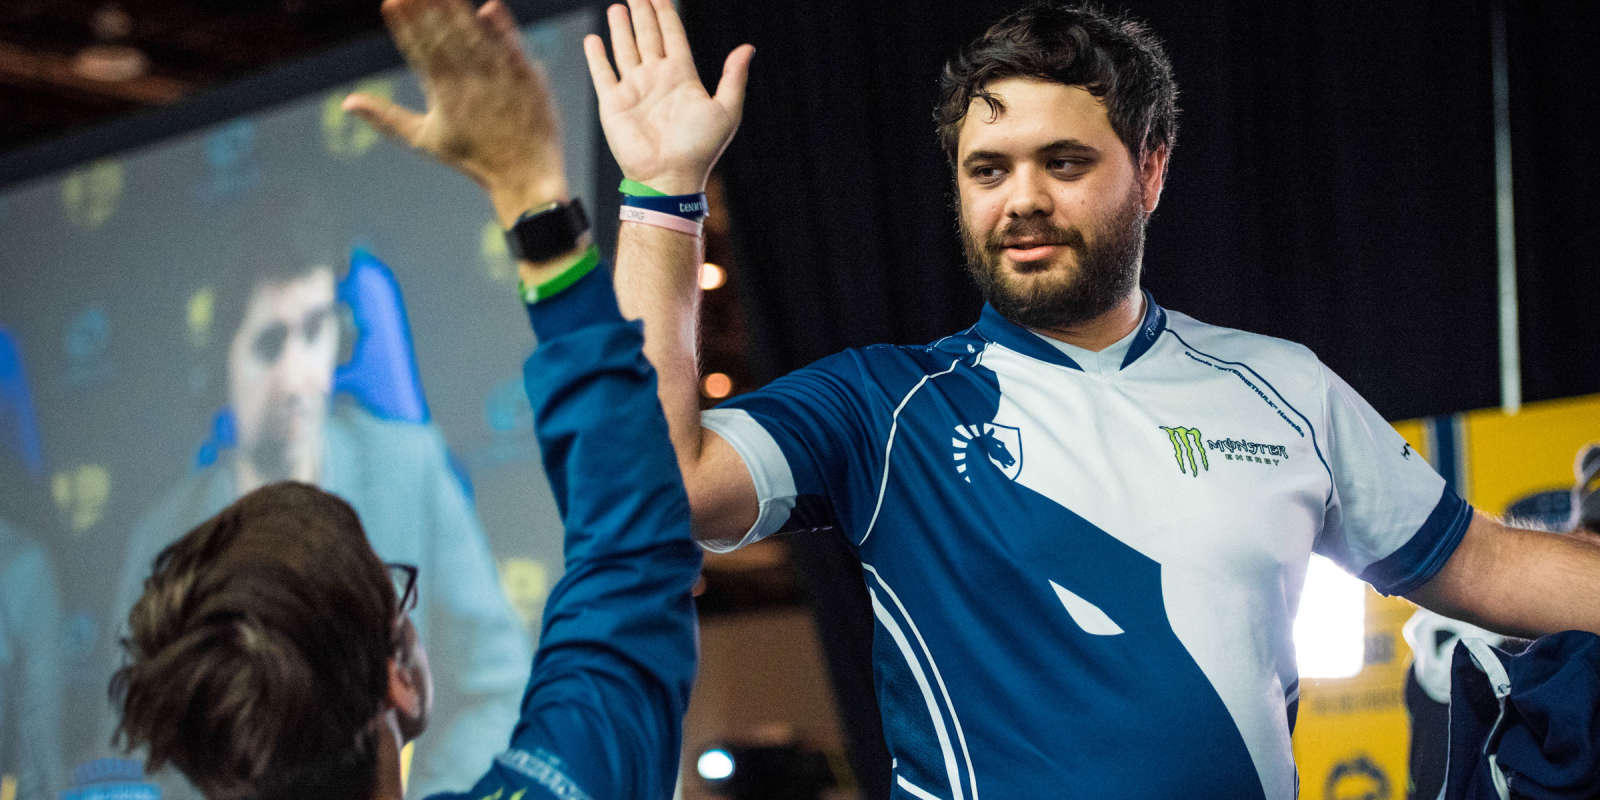 Photos of Team Liquid Smash players at The Big House, Hungrybox and Salem, with Coach Crunch. Hungrybox wins!